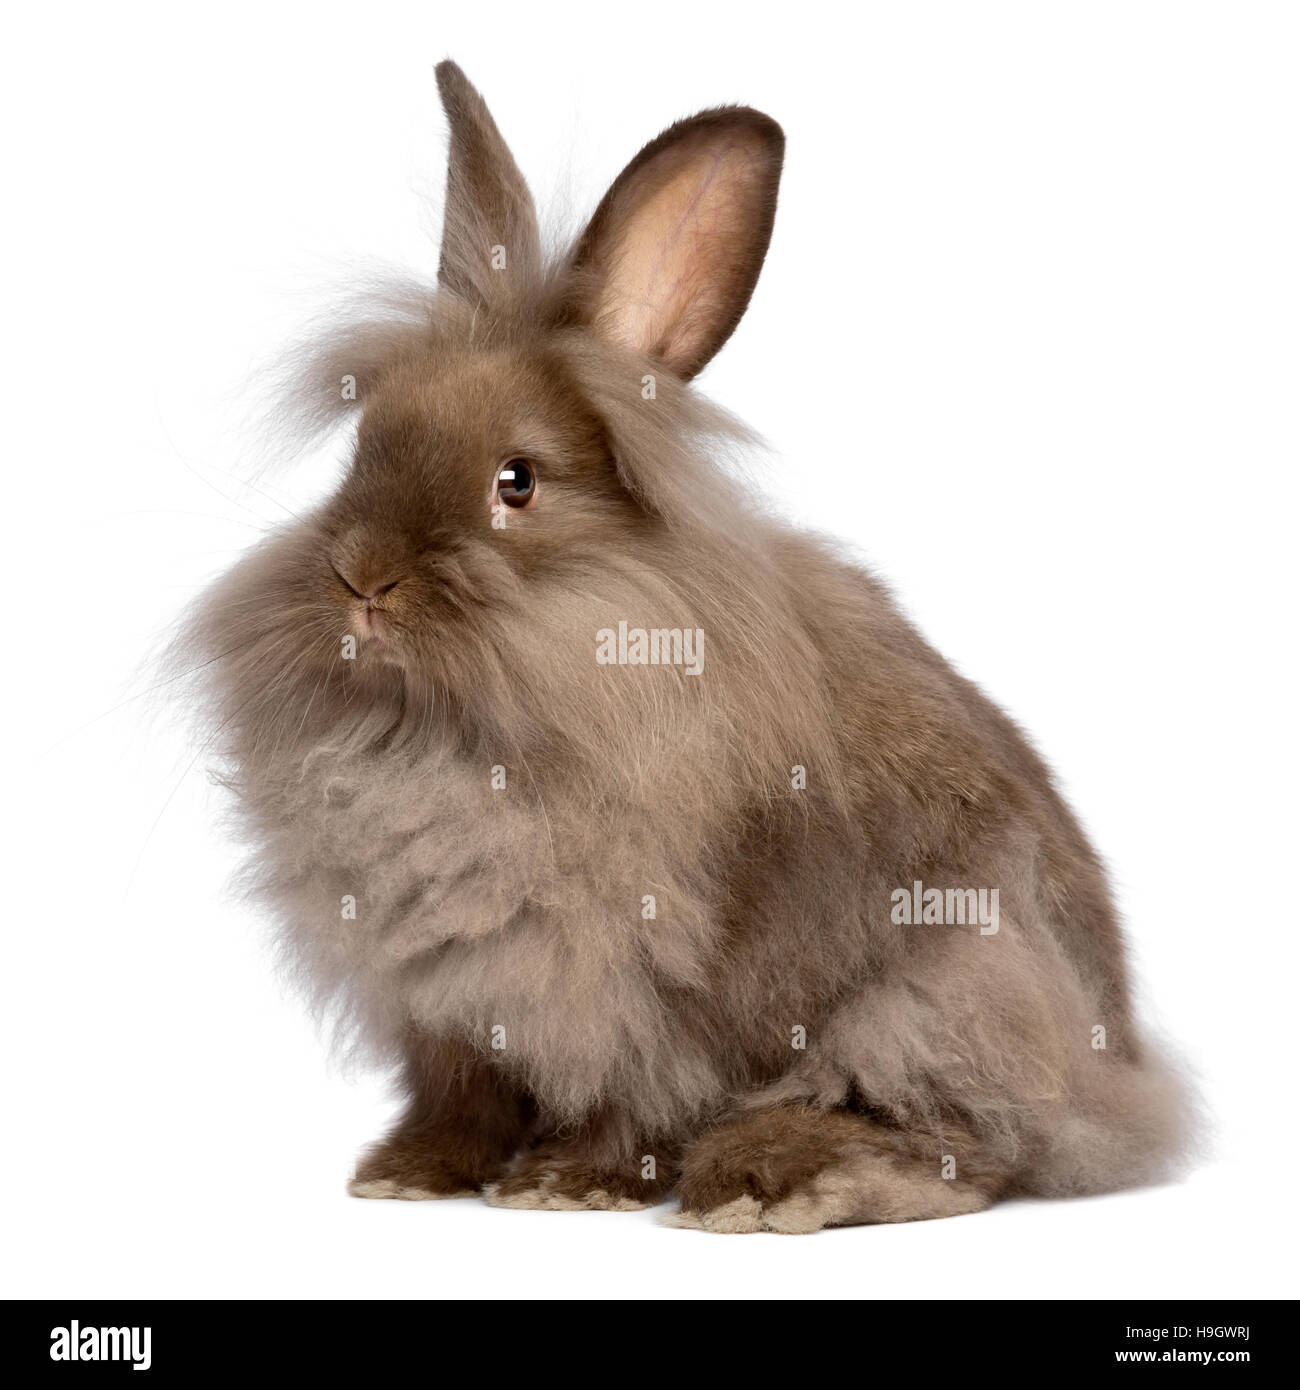 A cute sitting chocolate colored lionhead bunny rabbit - Stock Image